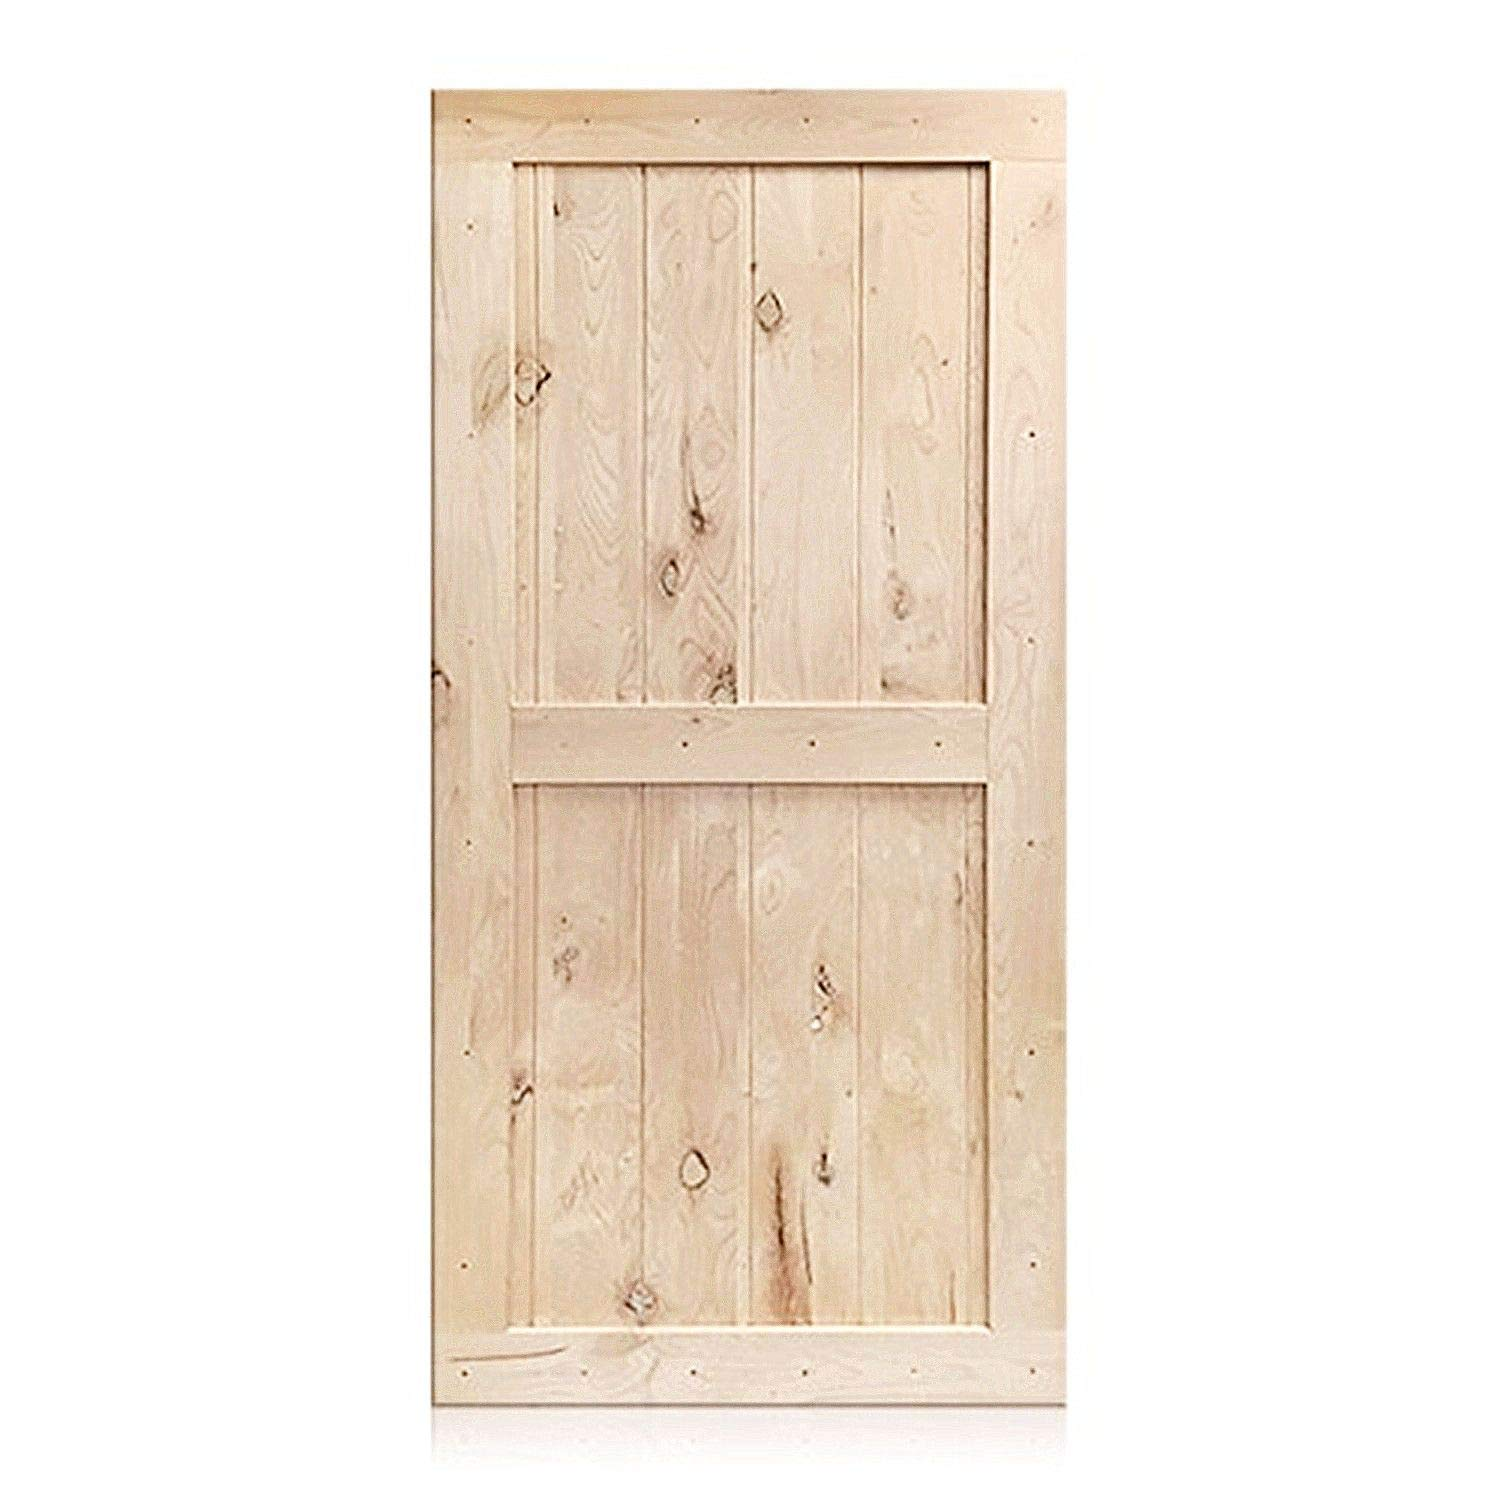 HOMACER Sliding Barn Door Natural Pine Wood Panel Slab, 42in x 84in Classic Design with Frame, Perfect for Interior, Exterior, Closet and Bedroom Use